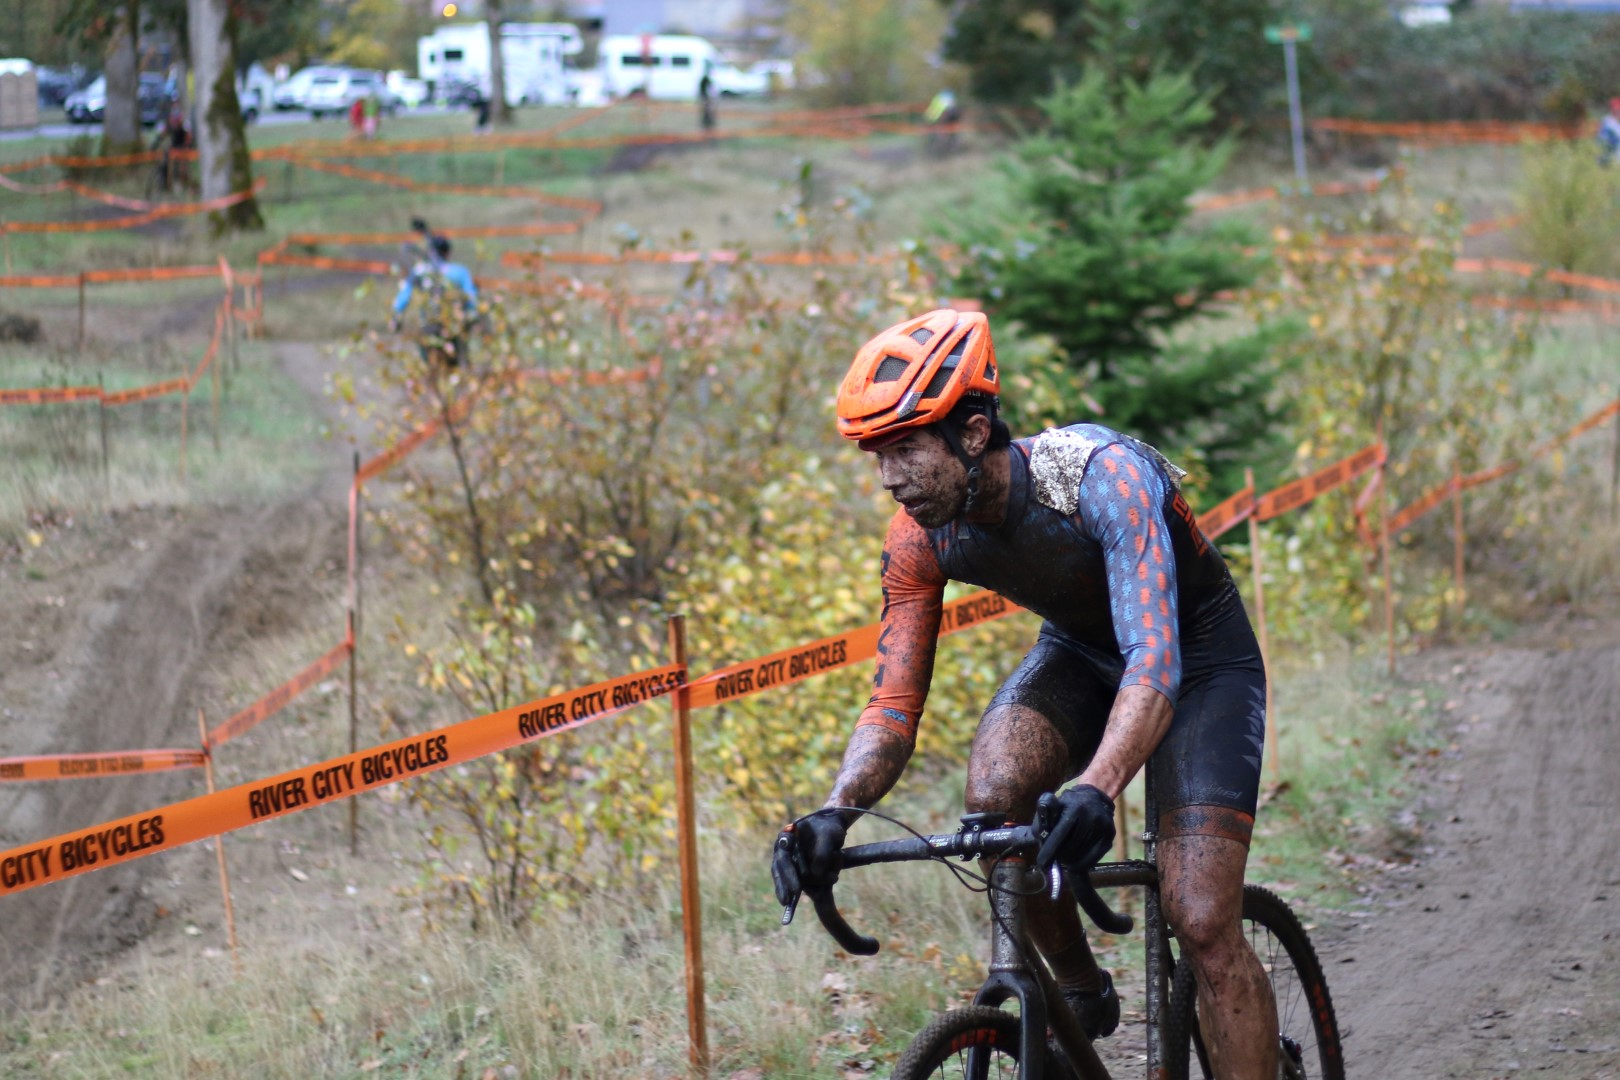 PDXTI-2018-CX-Crusade-04-Cascade-Locks (189).JPG